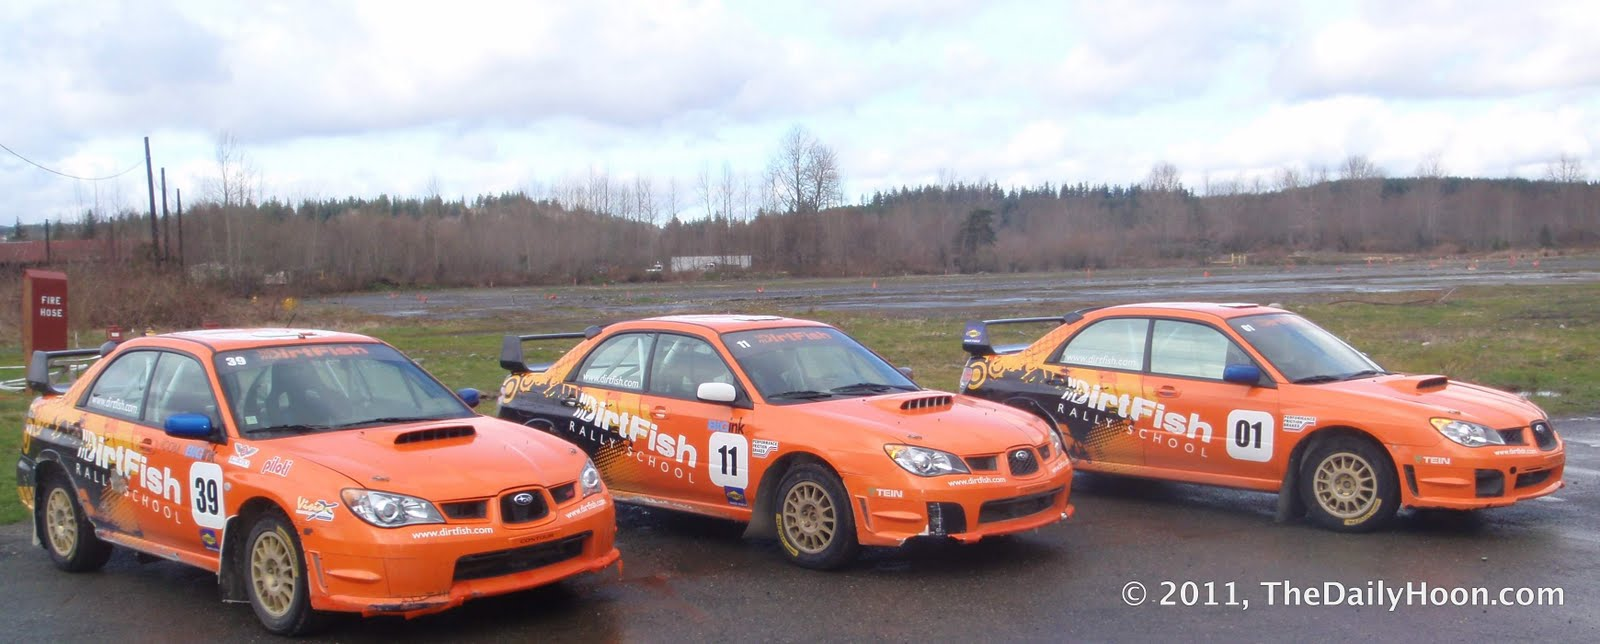 The Daily Hoon: DirtFish Rally School - A Daily Hoon Review